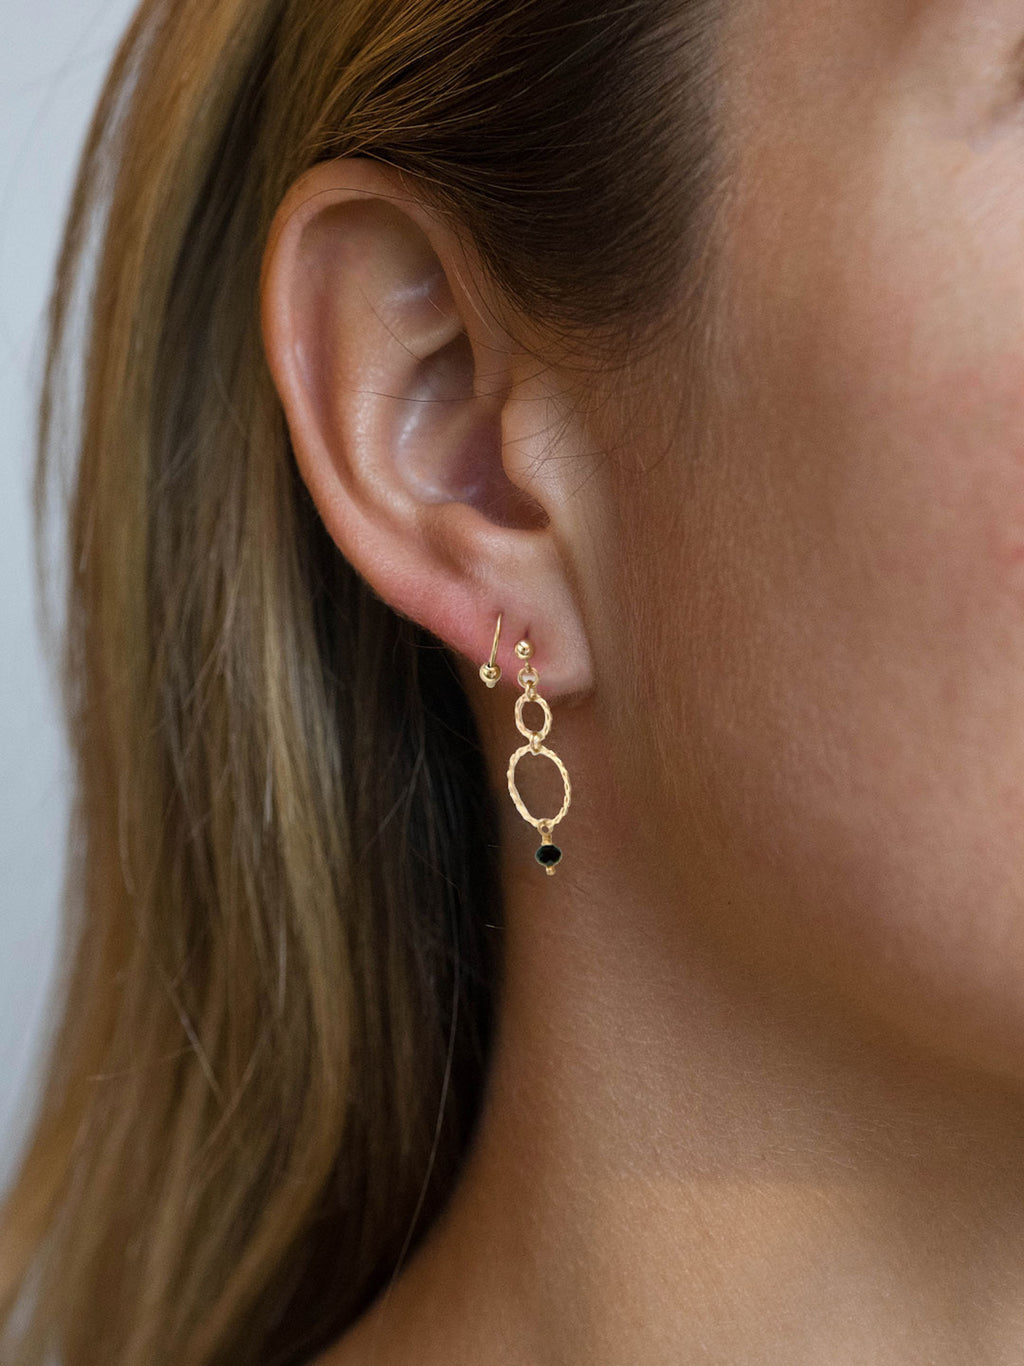 The Newton earrings